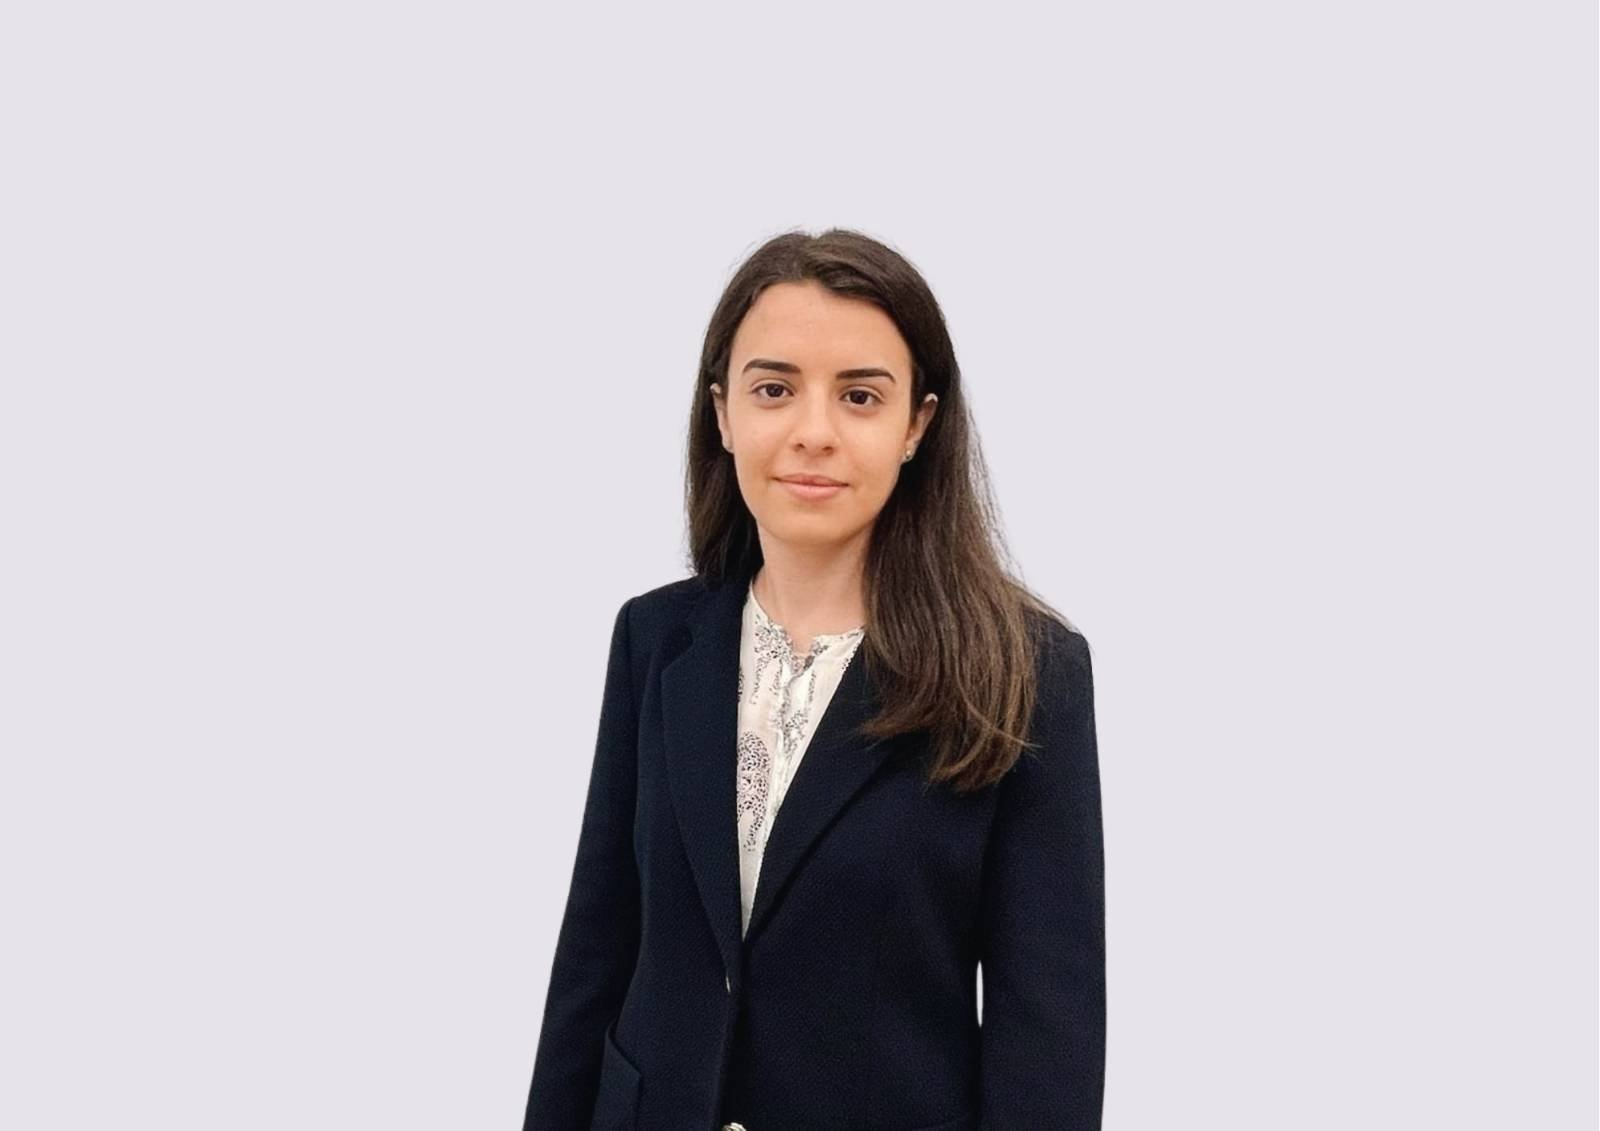 A picture showing one of the members in act legal Romania team